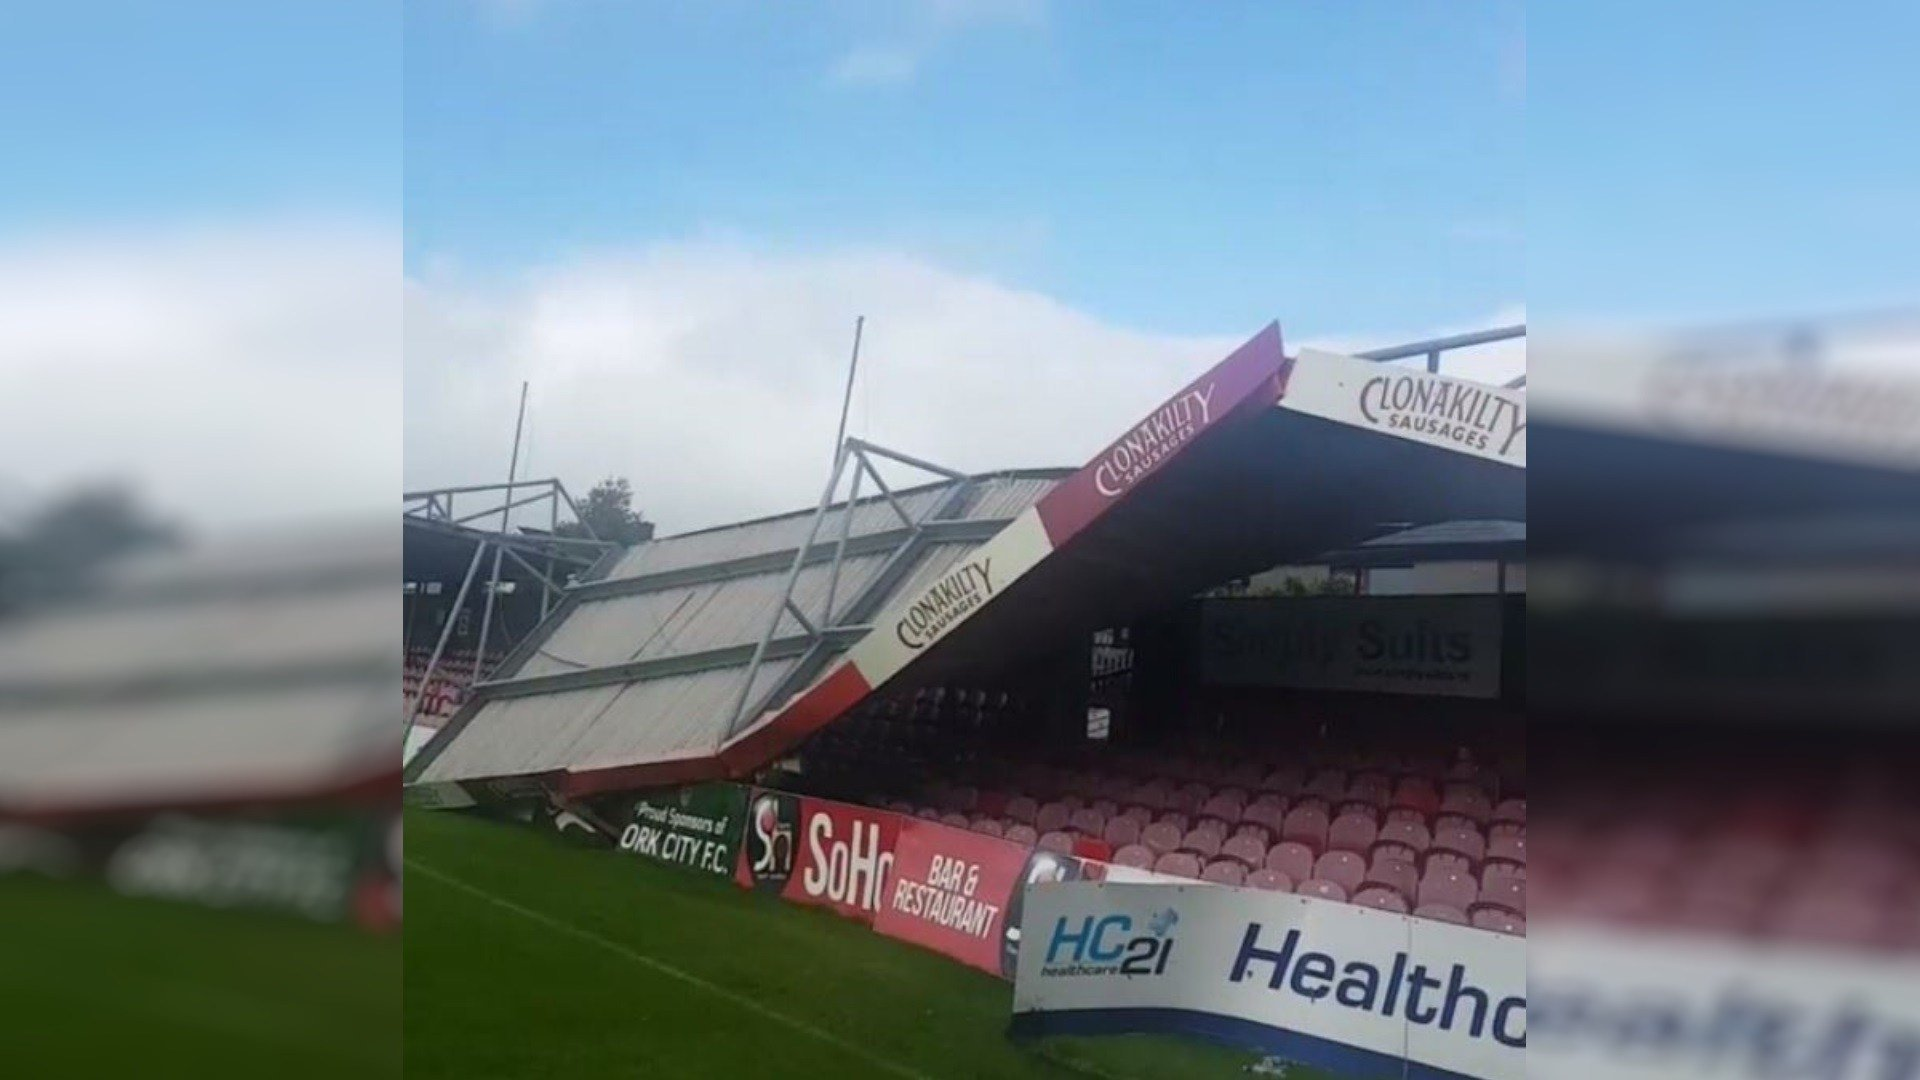 The roof of Cork City's soccer stadium has partially collapsed as Ophelia's winds batter Ireland. (Twitter)